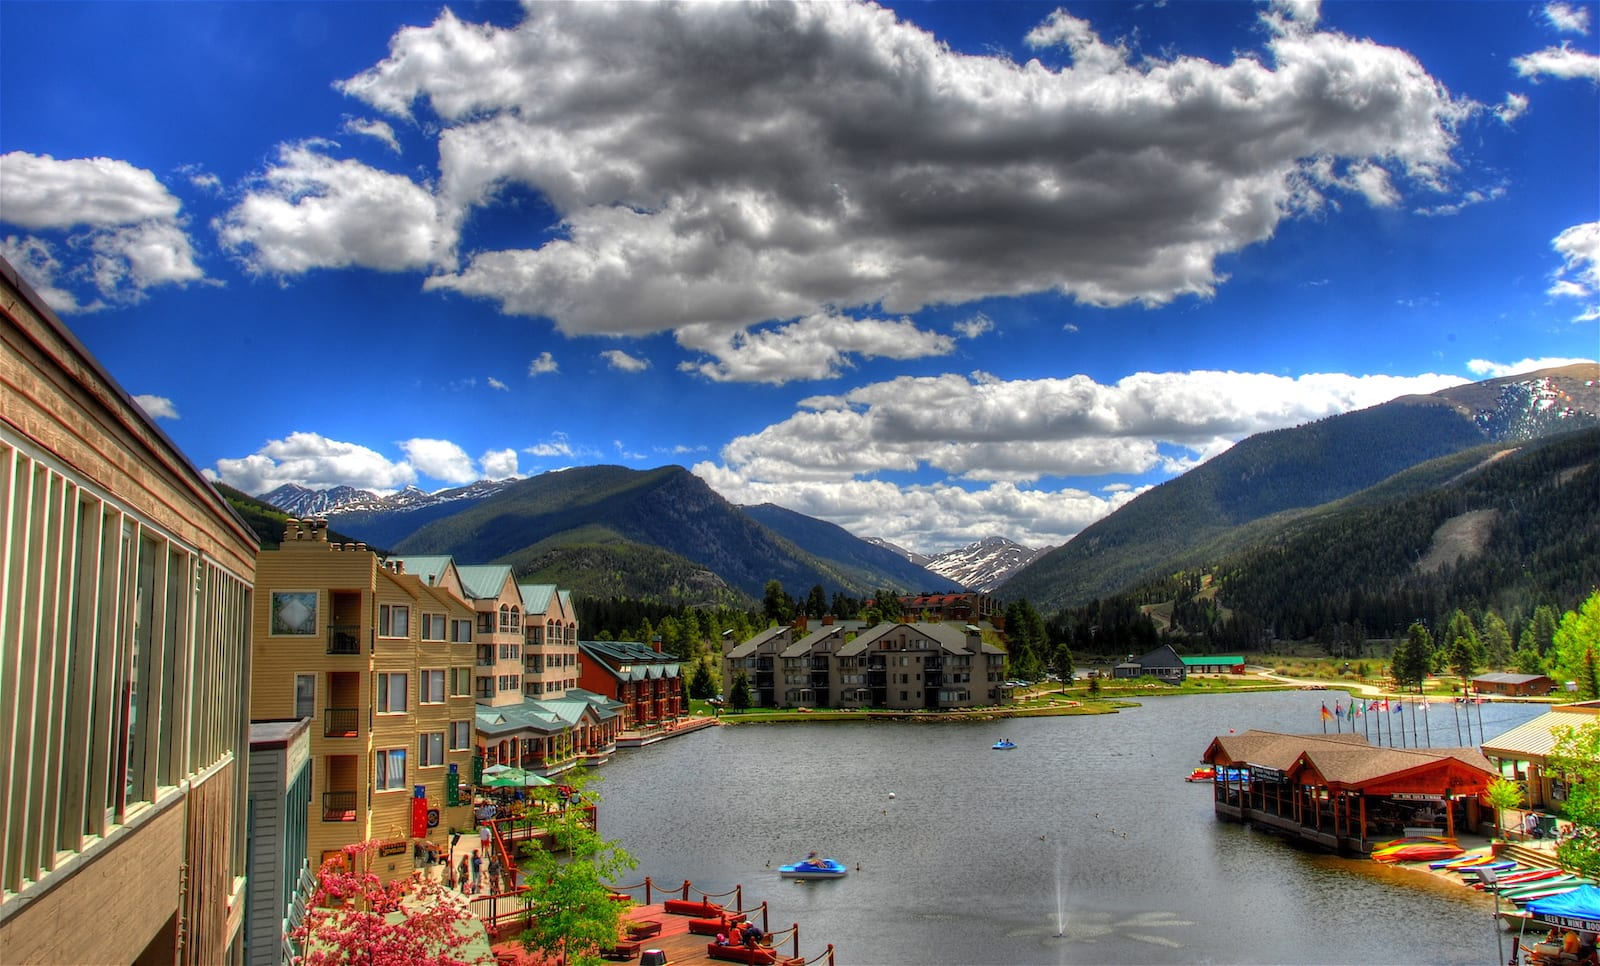 Keystone Lake, Colorado